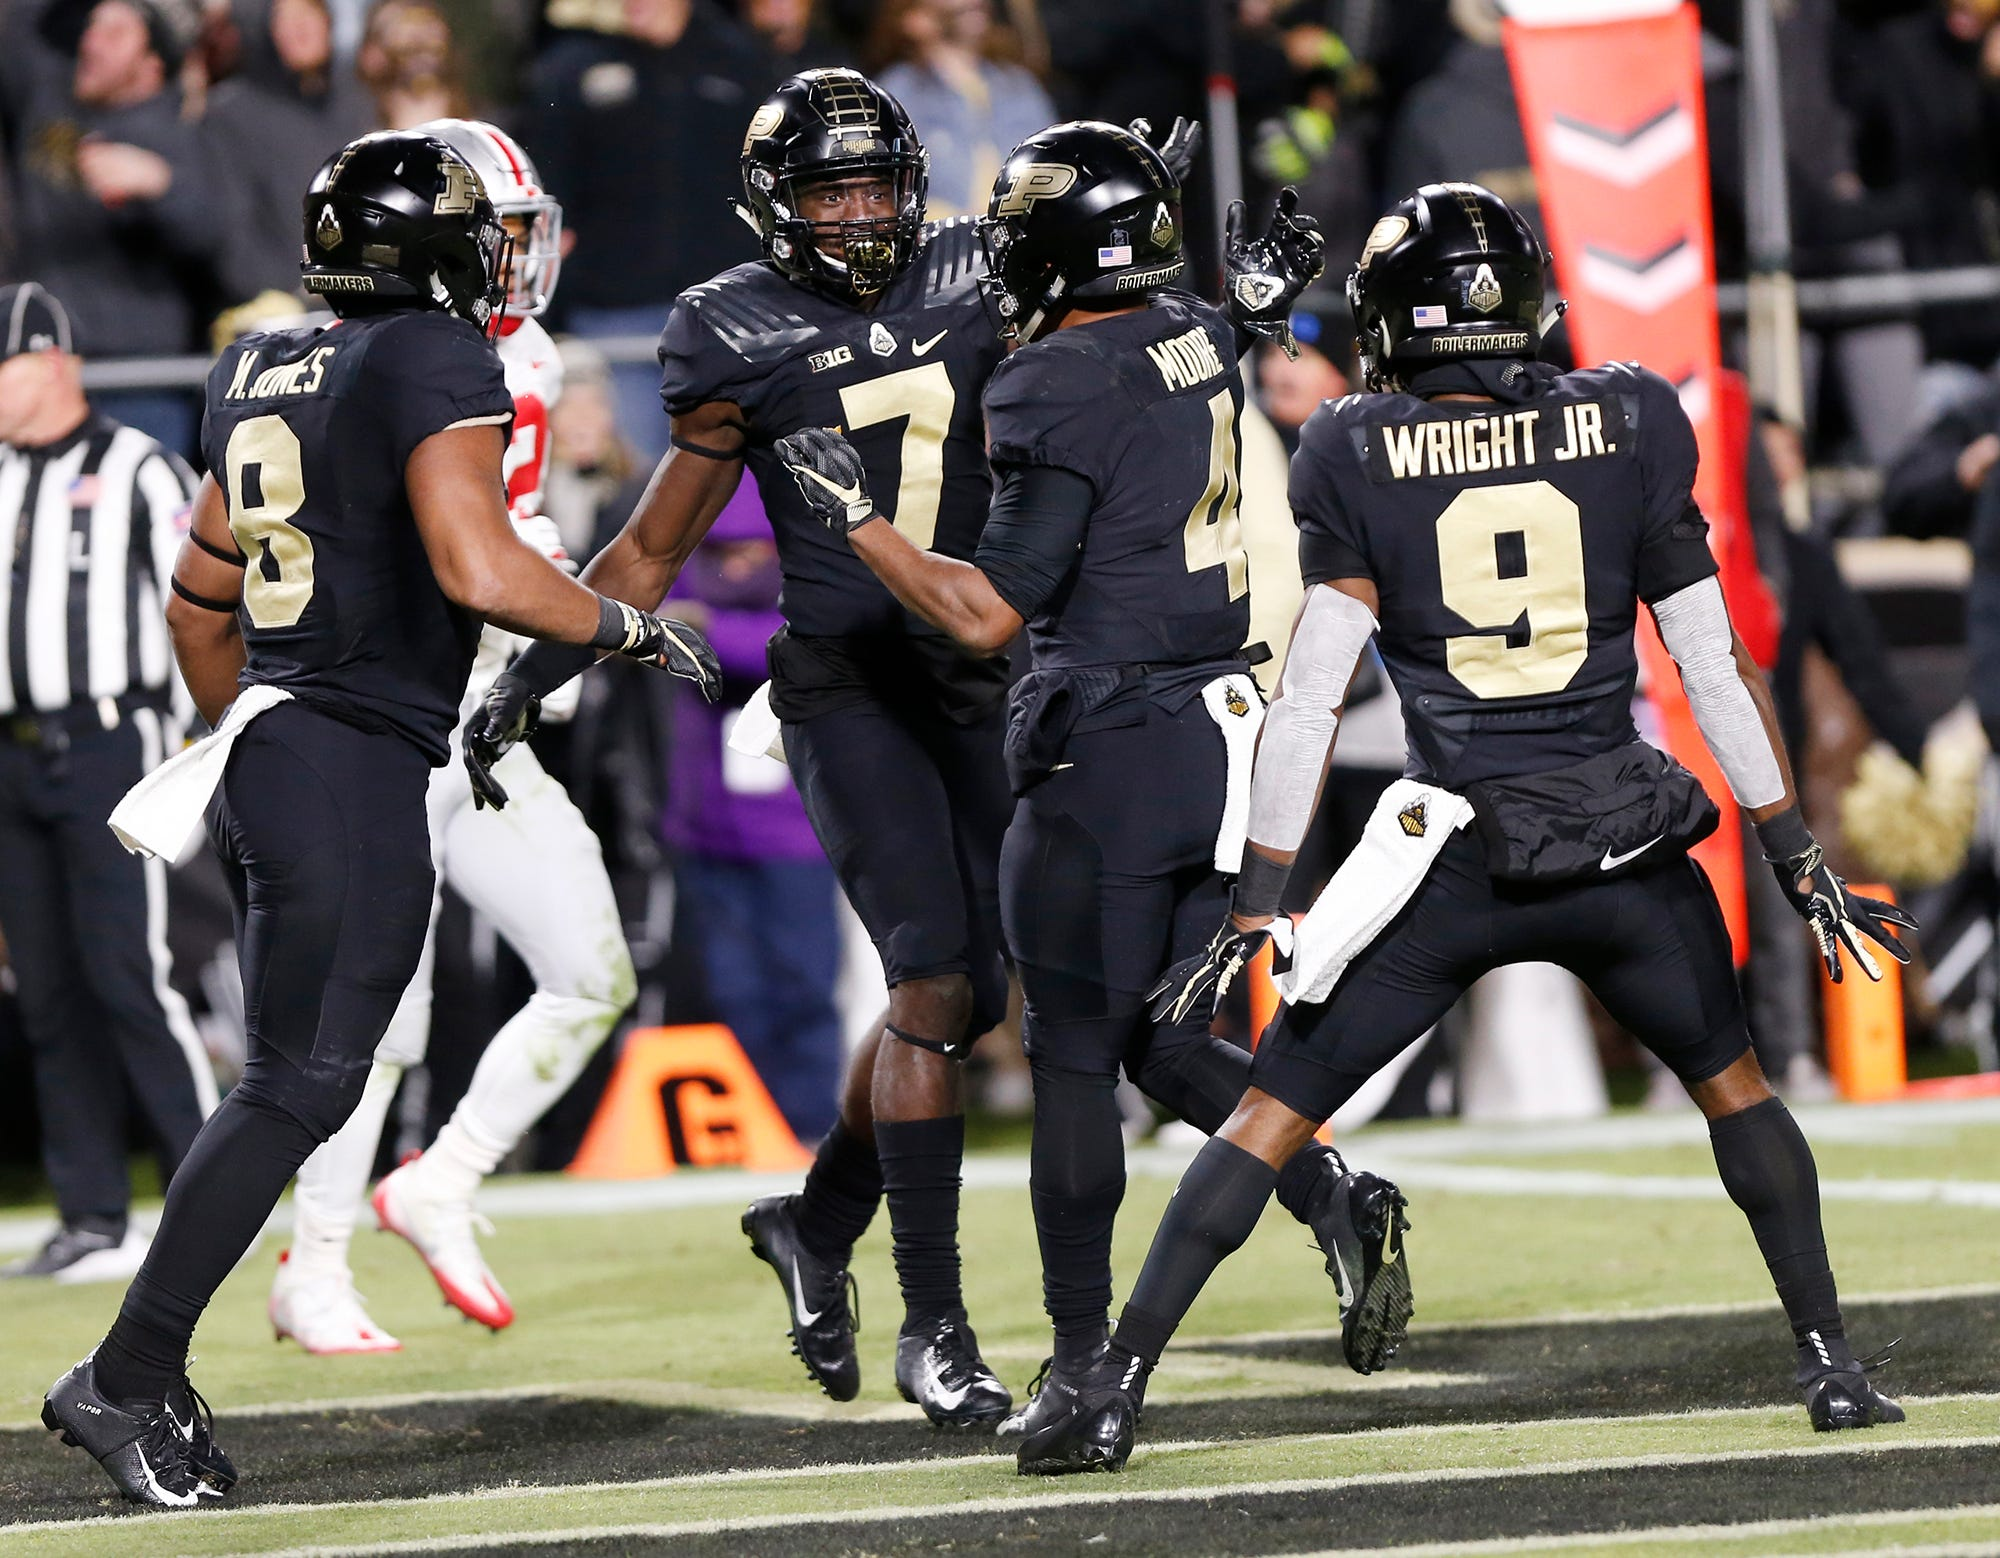 Isaac Zico (7) of celebrates with his Purdue teammates after his first half touchdown against Ohio State Saturday, October 20, 2018, at Ross-Ade Stadium.